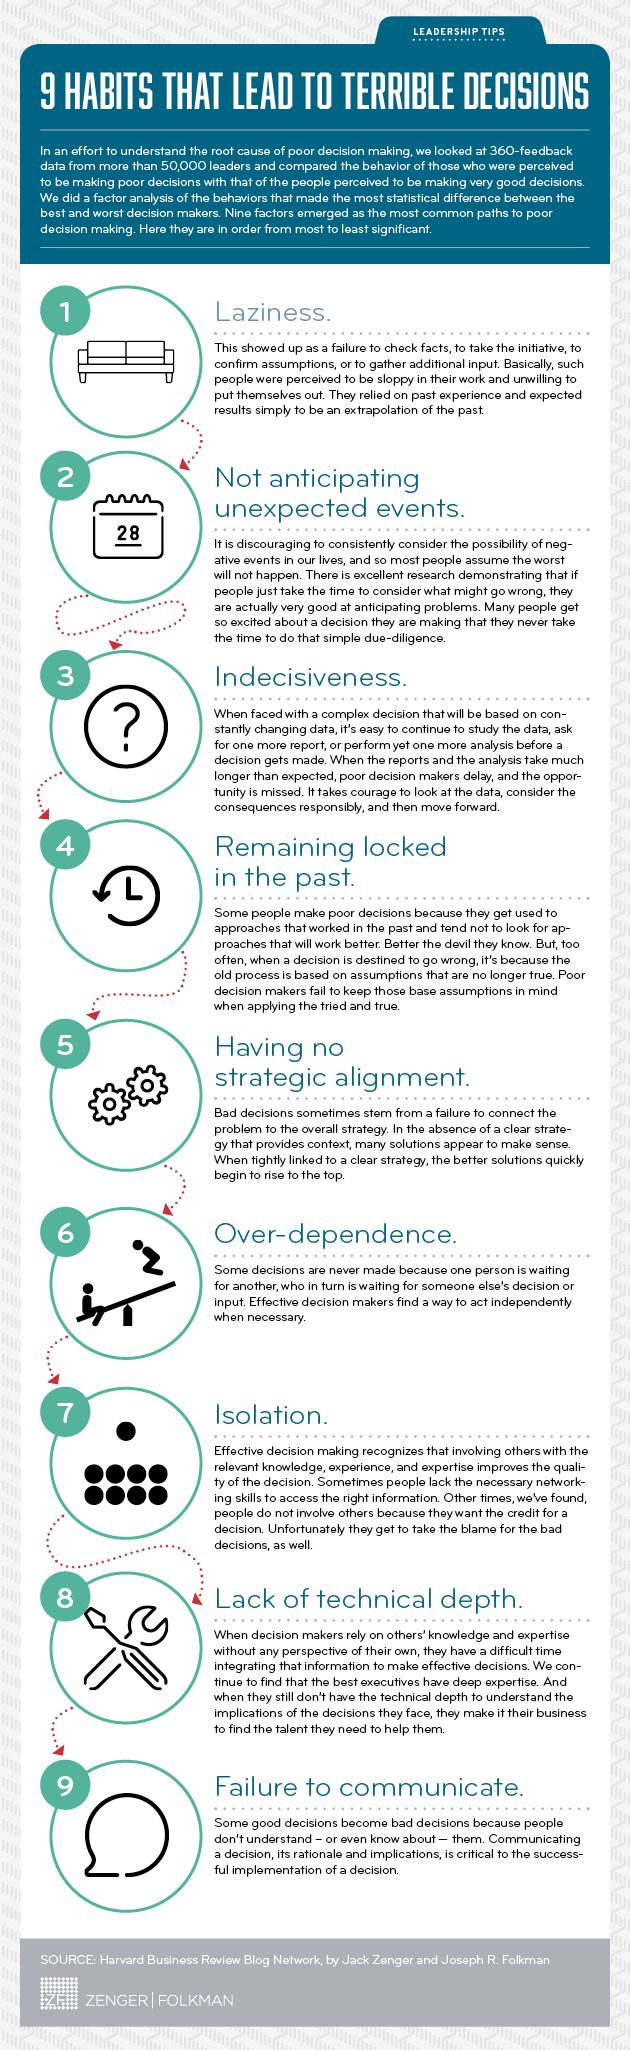 17 best ideas about bad habits habits of successful 9 habits that lead to bad decision making